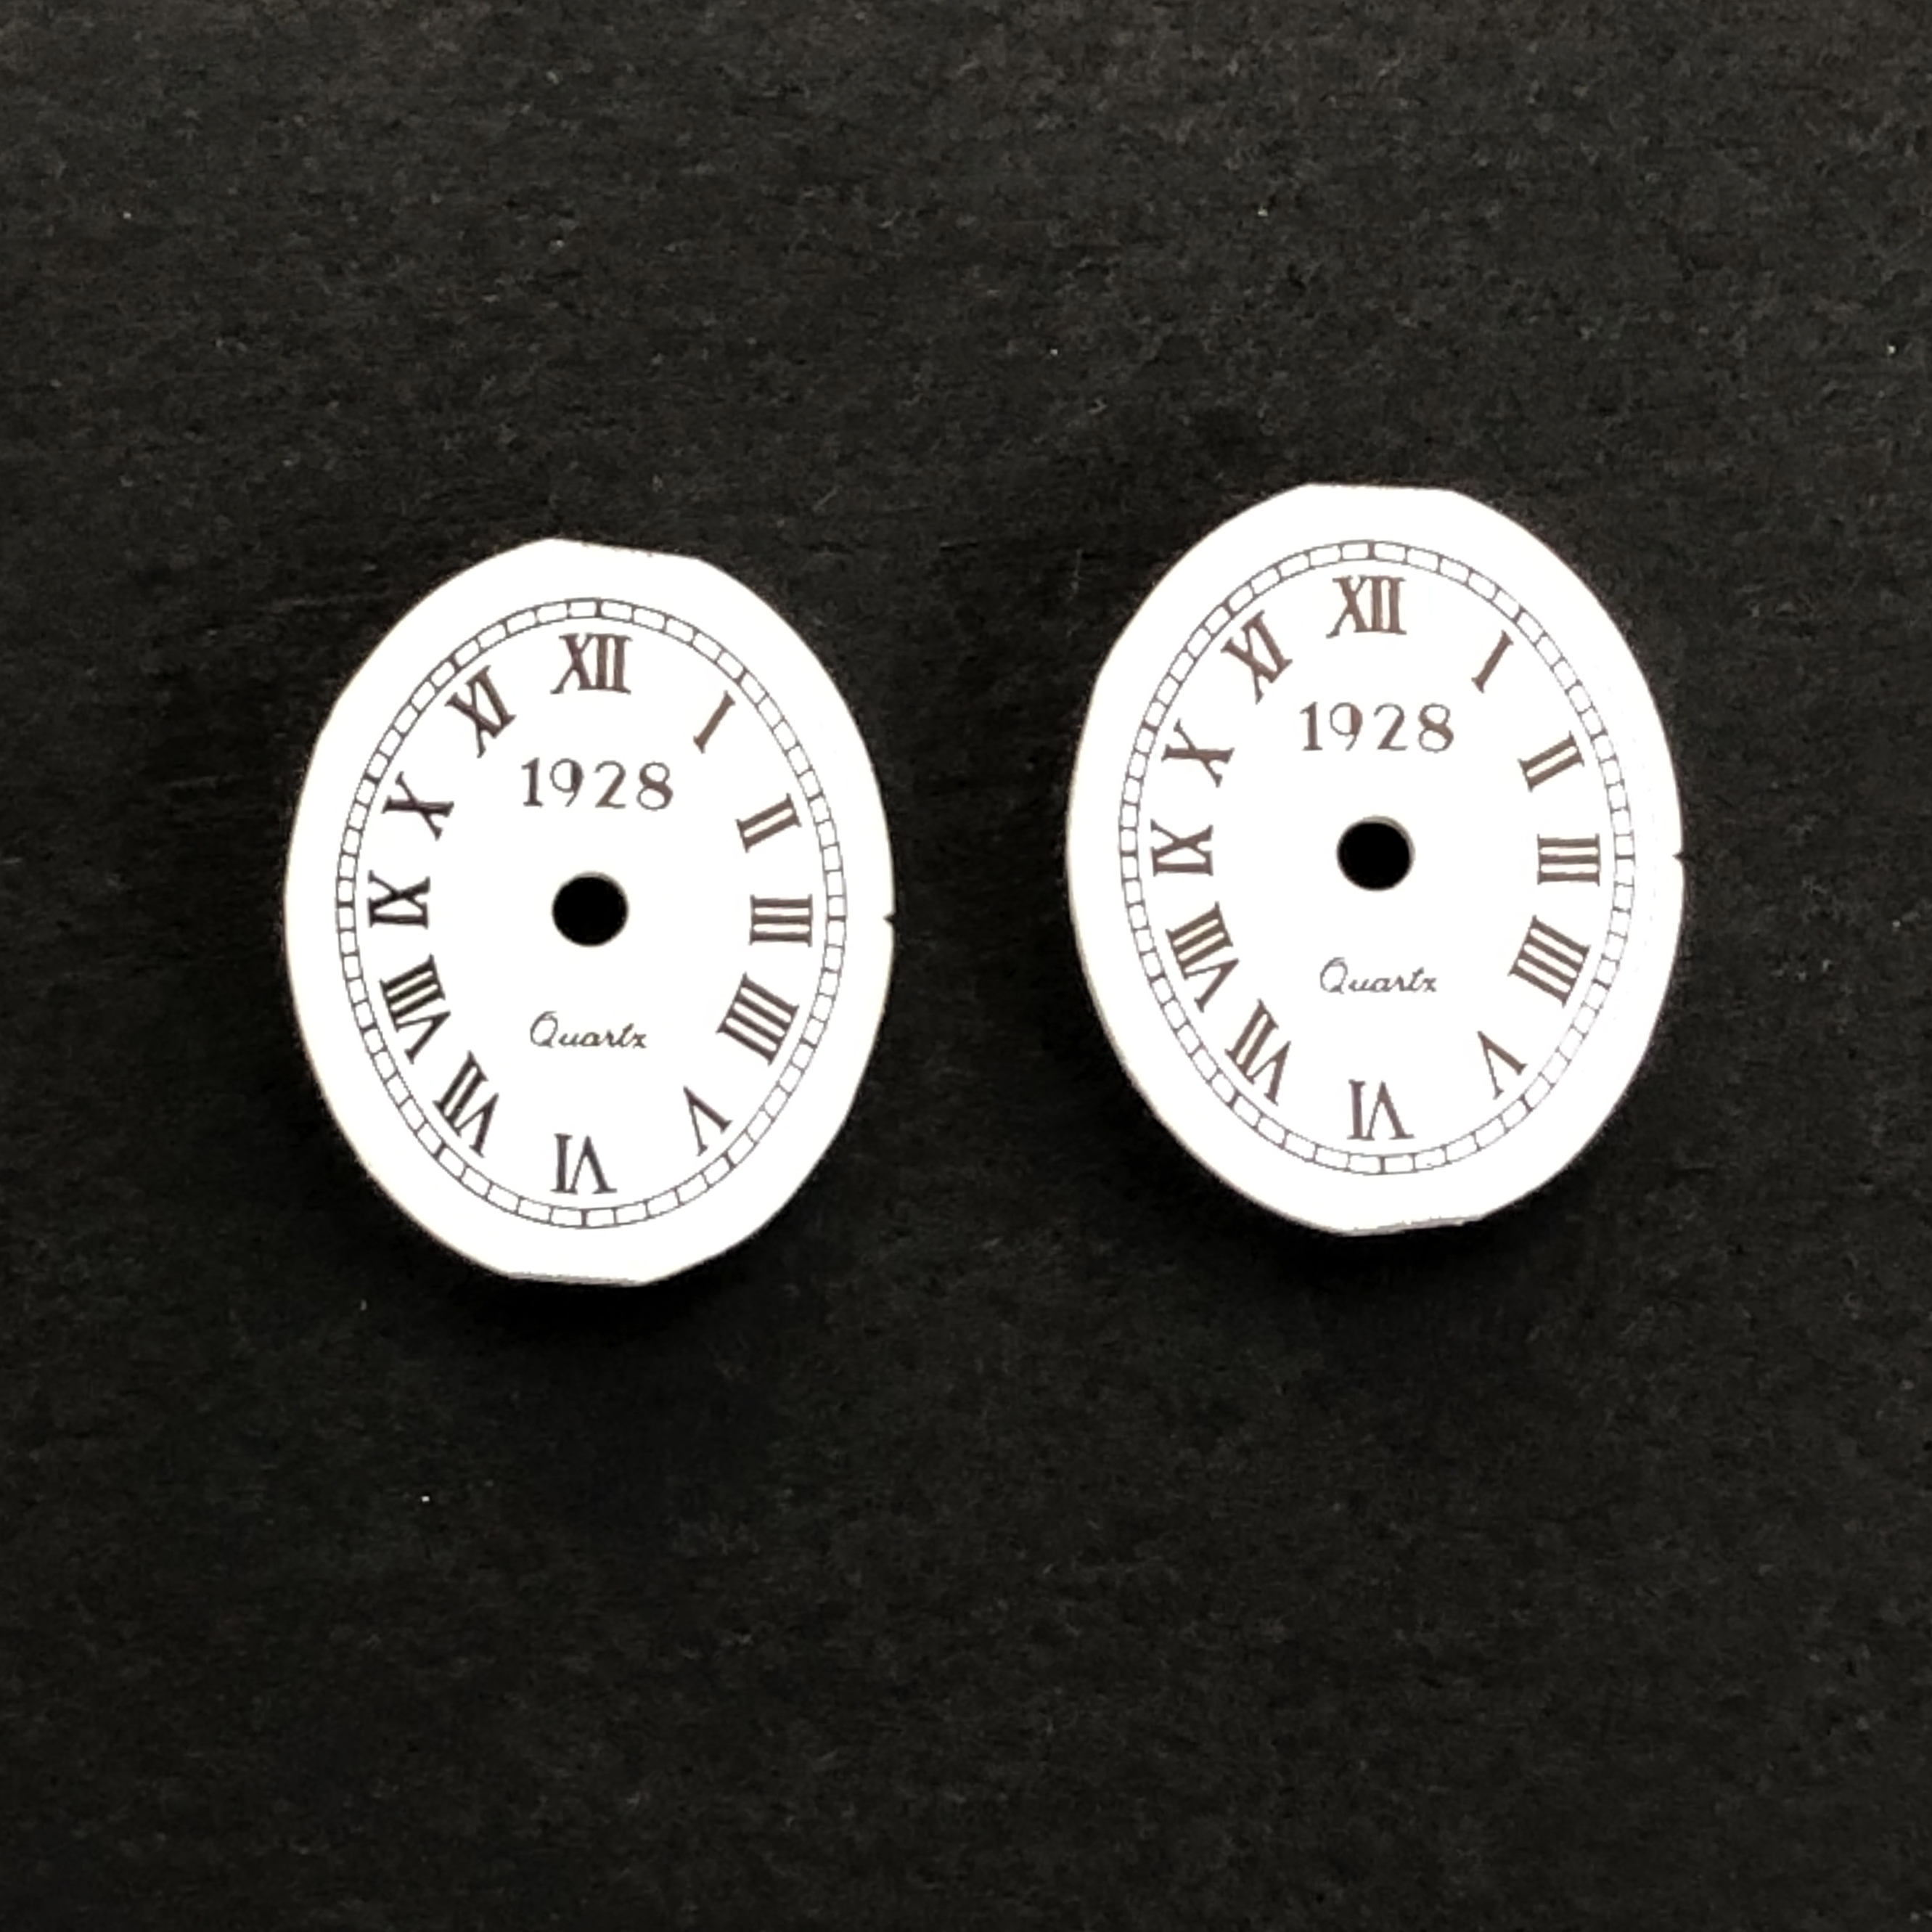 1928 clock faces, jewelry making, 16x13mm, 02140, watch parts, vintage jewelry supplies, metal watch parts, jewelry making supplies, Bsue Boutiques, Roman numeral numbers,